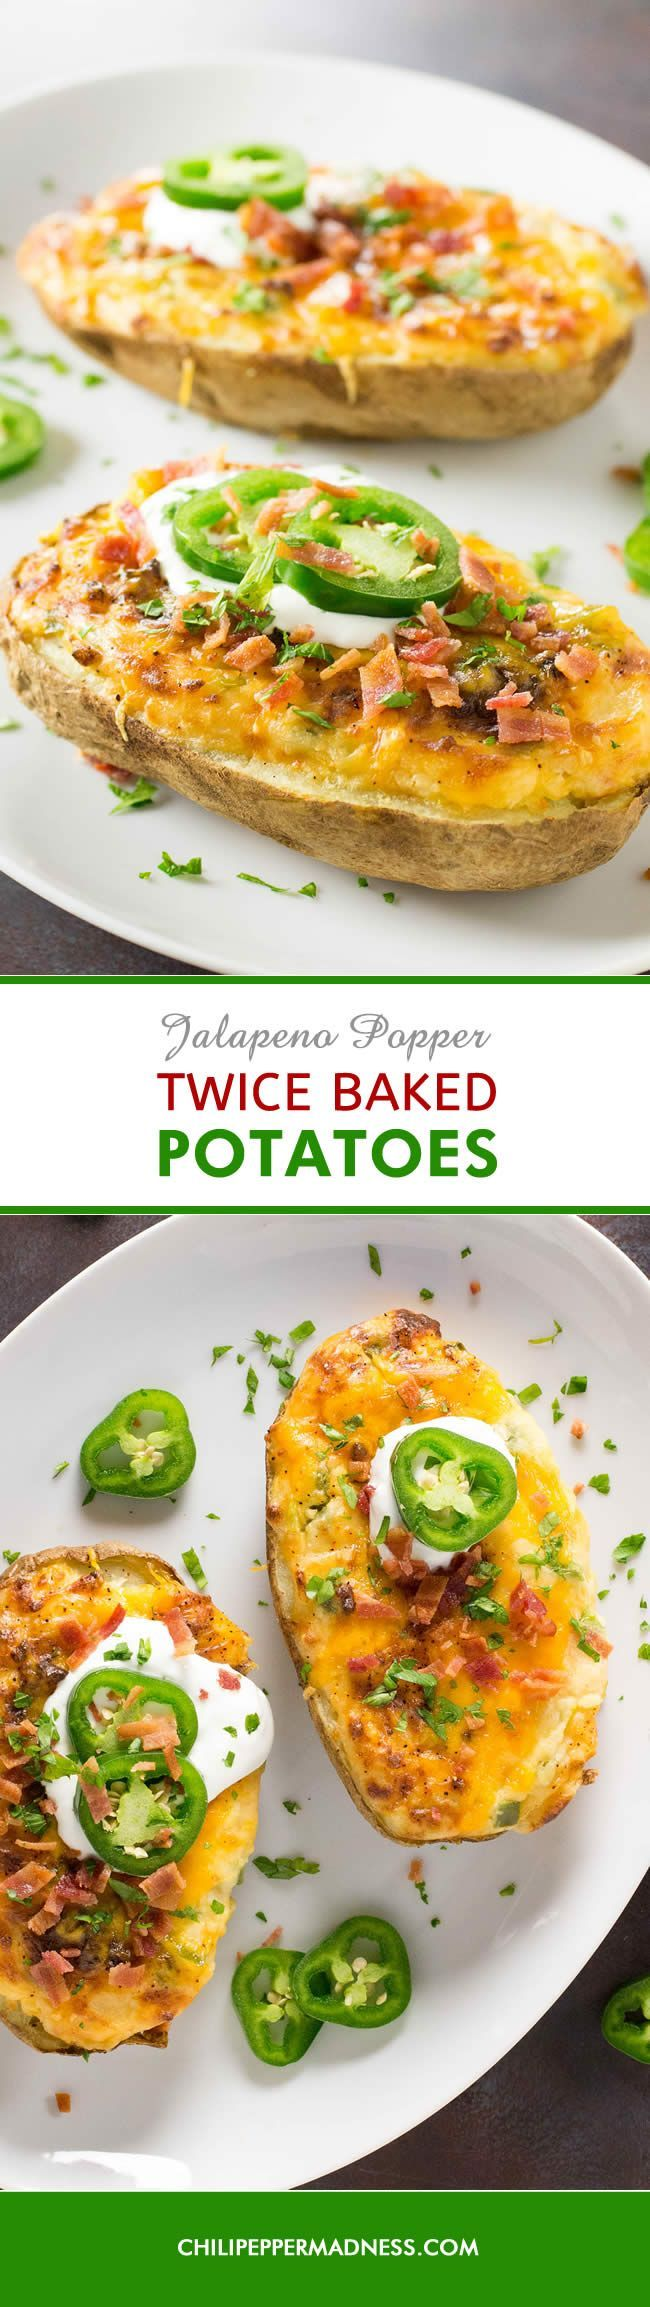 Jalapeno Popper Twice Baked Potatoes - The ultimate side dish recipe - baked potatoes mashed with cream cheese, cheddar and jalapeno pepper, stuffed into a potato shell and baked to perfection, topped with jalapeno slices. It's a mashup recipe - jalapeno poppers and twice baked potatoes. Addictive!